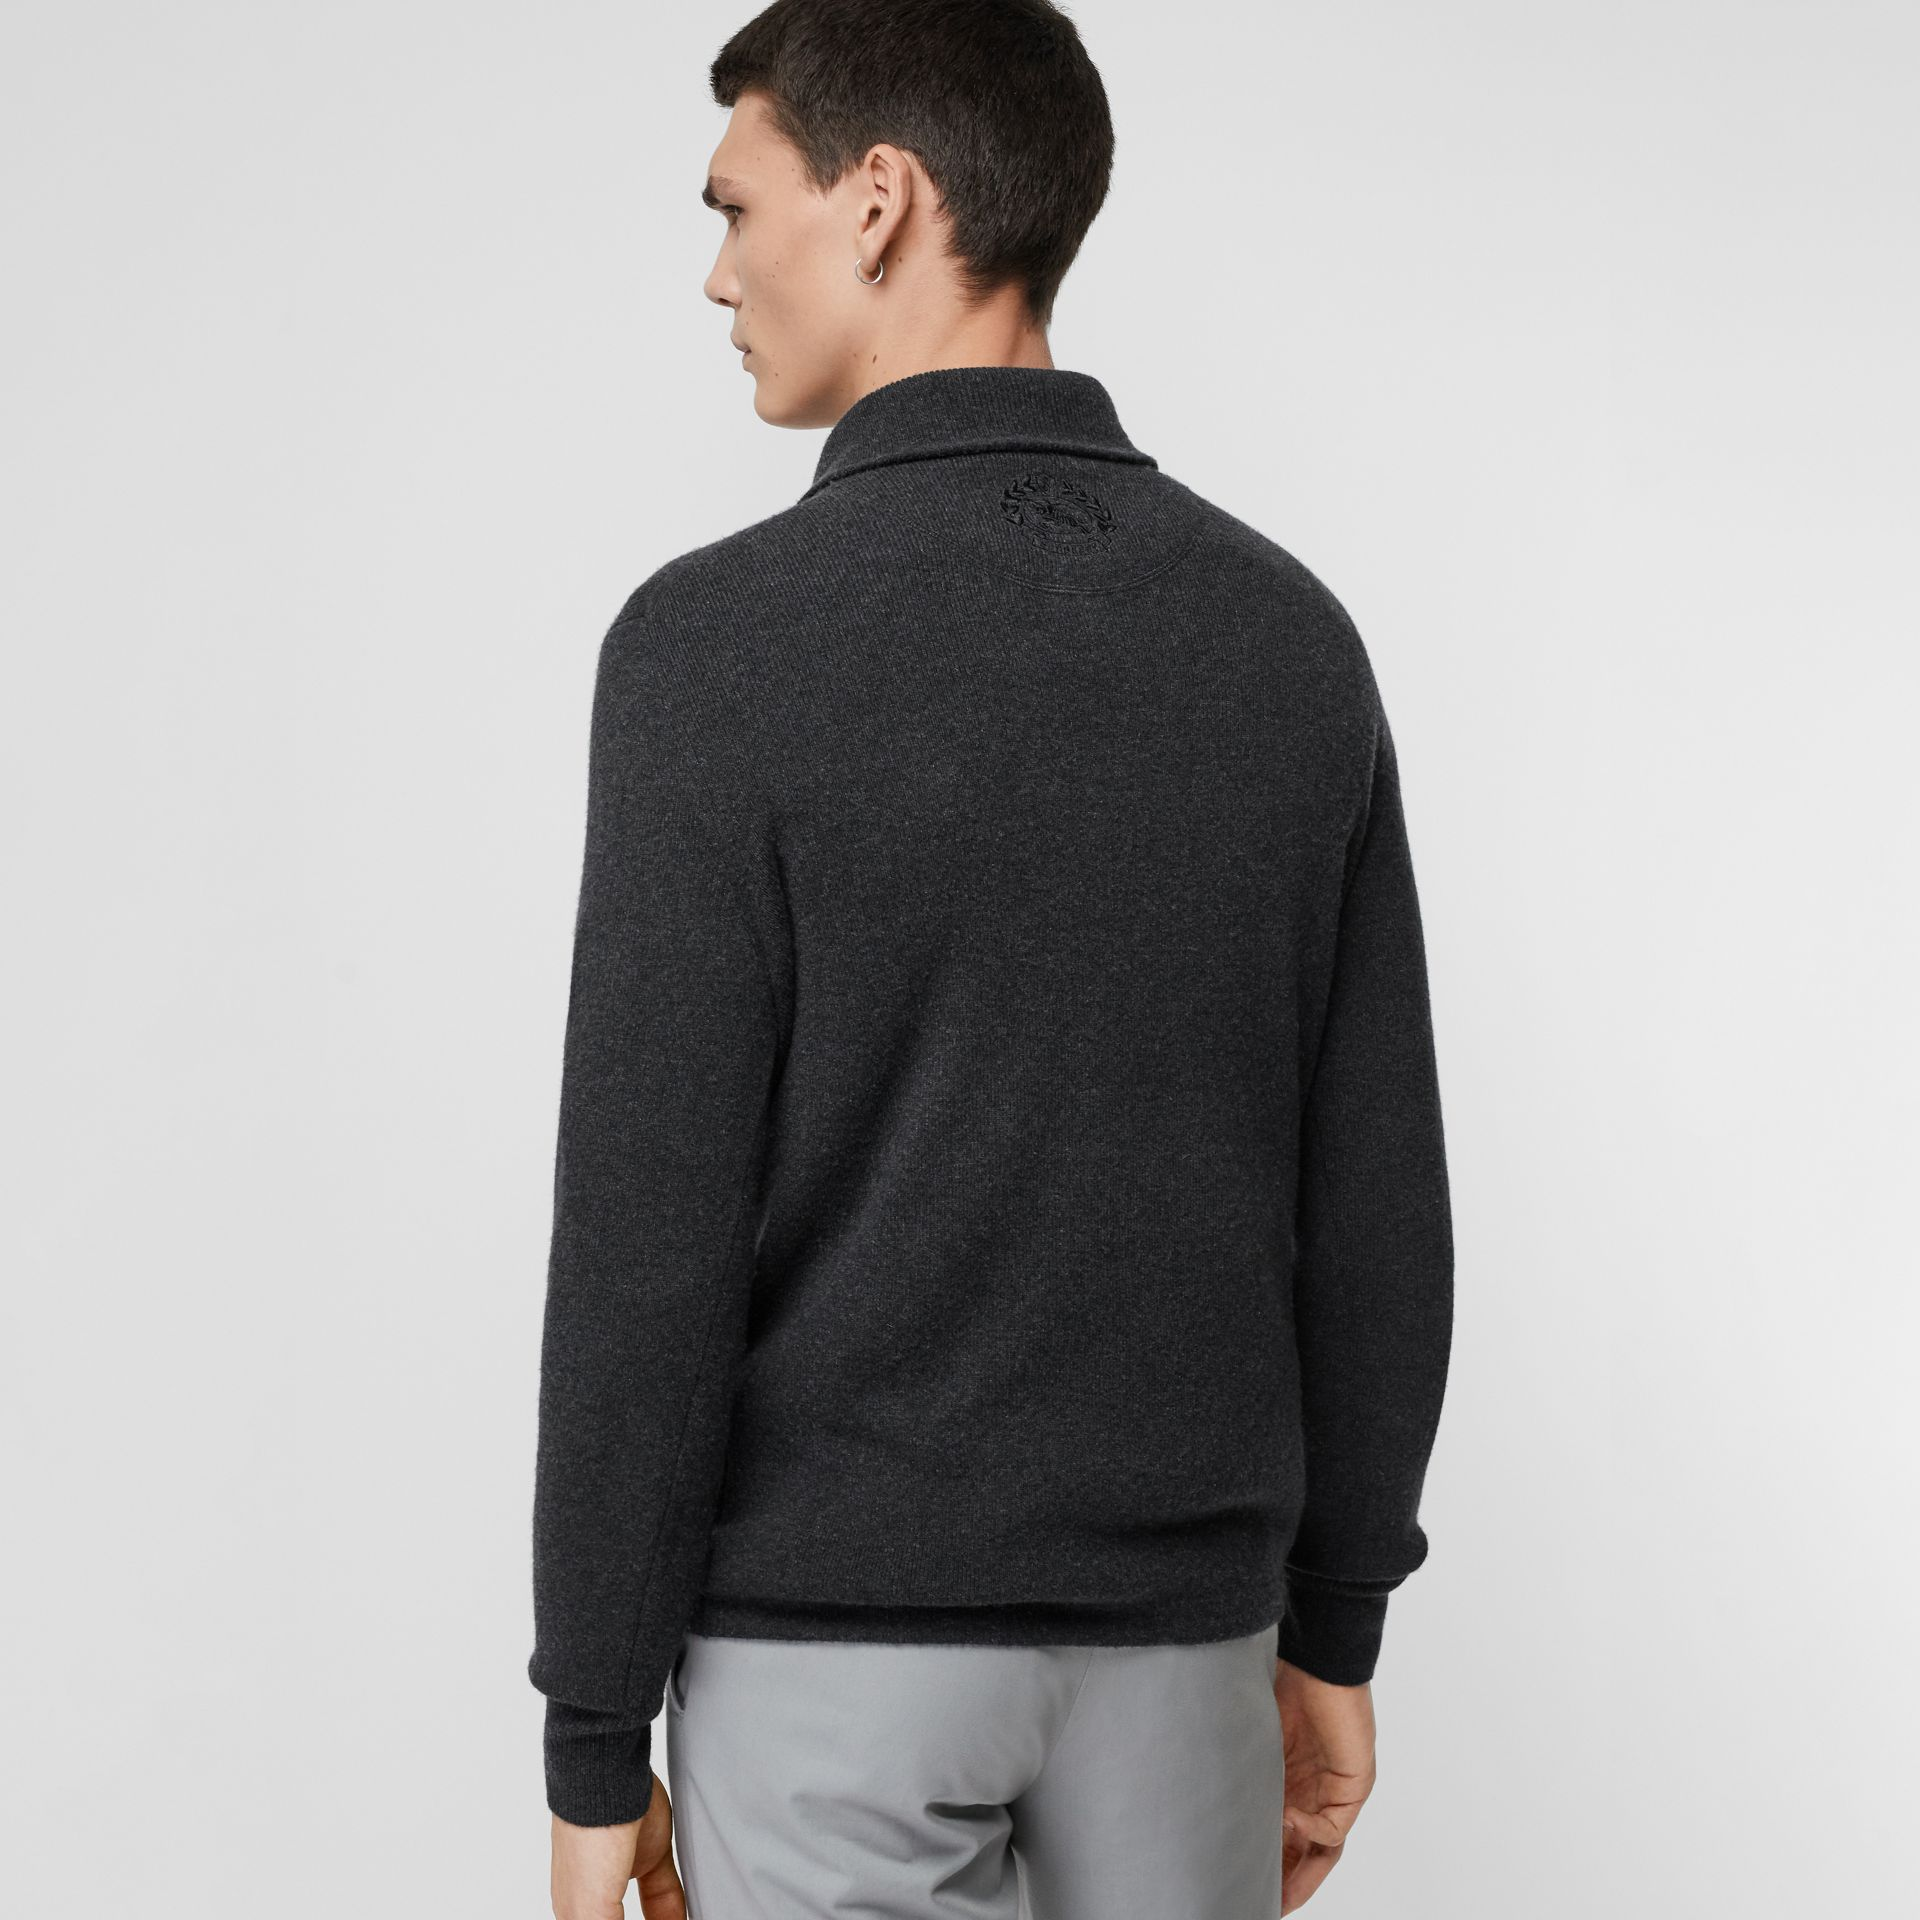 Rib Knit Cashmere Half-zip Sweater in Charcoal Melange - Men | Burberry - gallery image 2